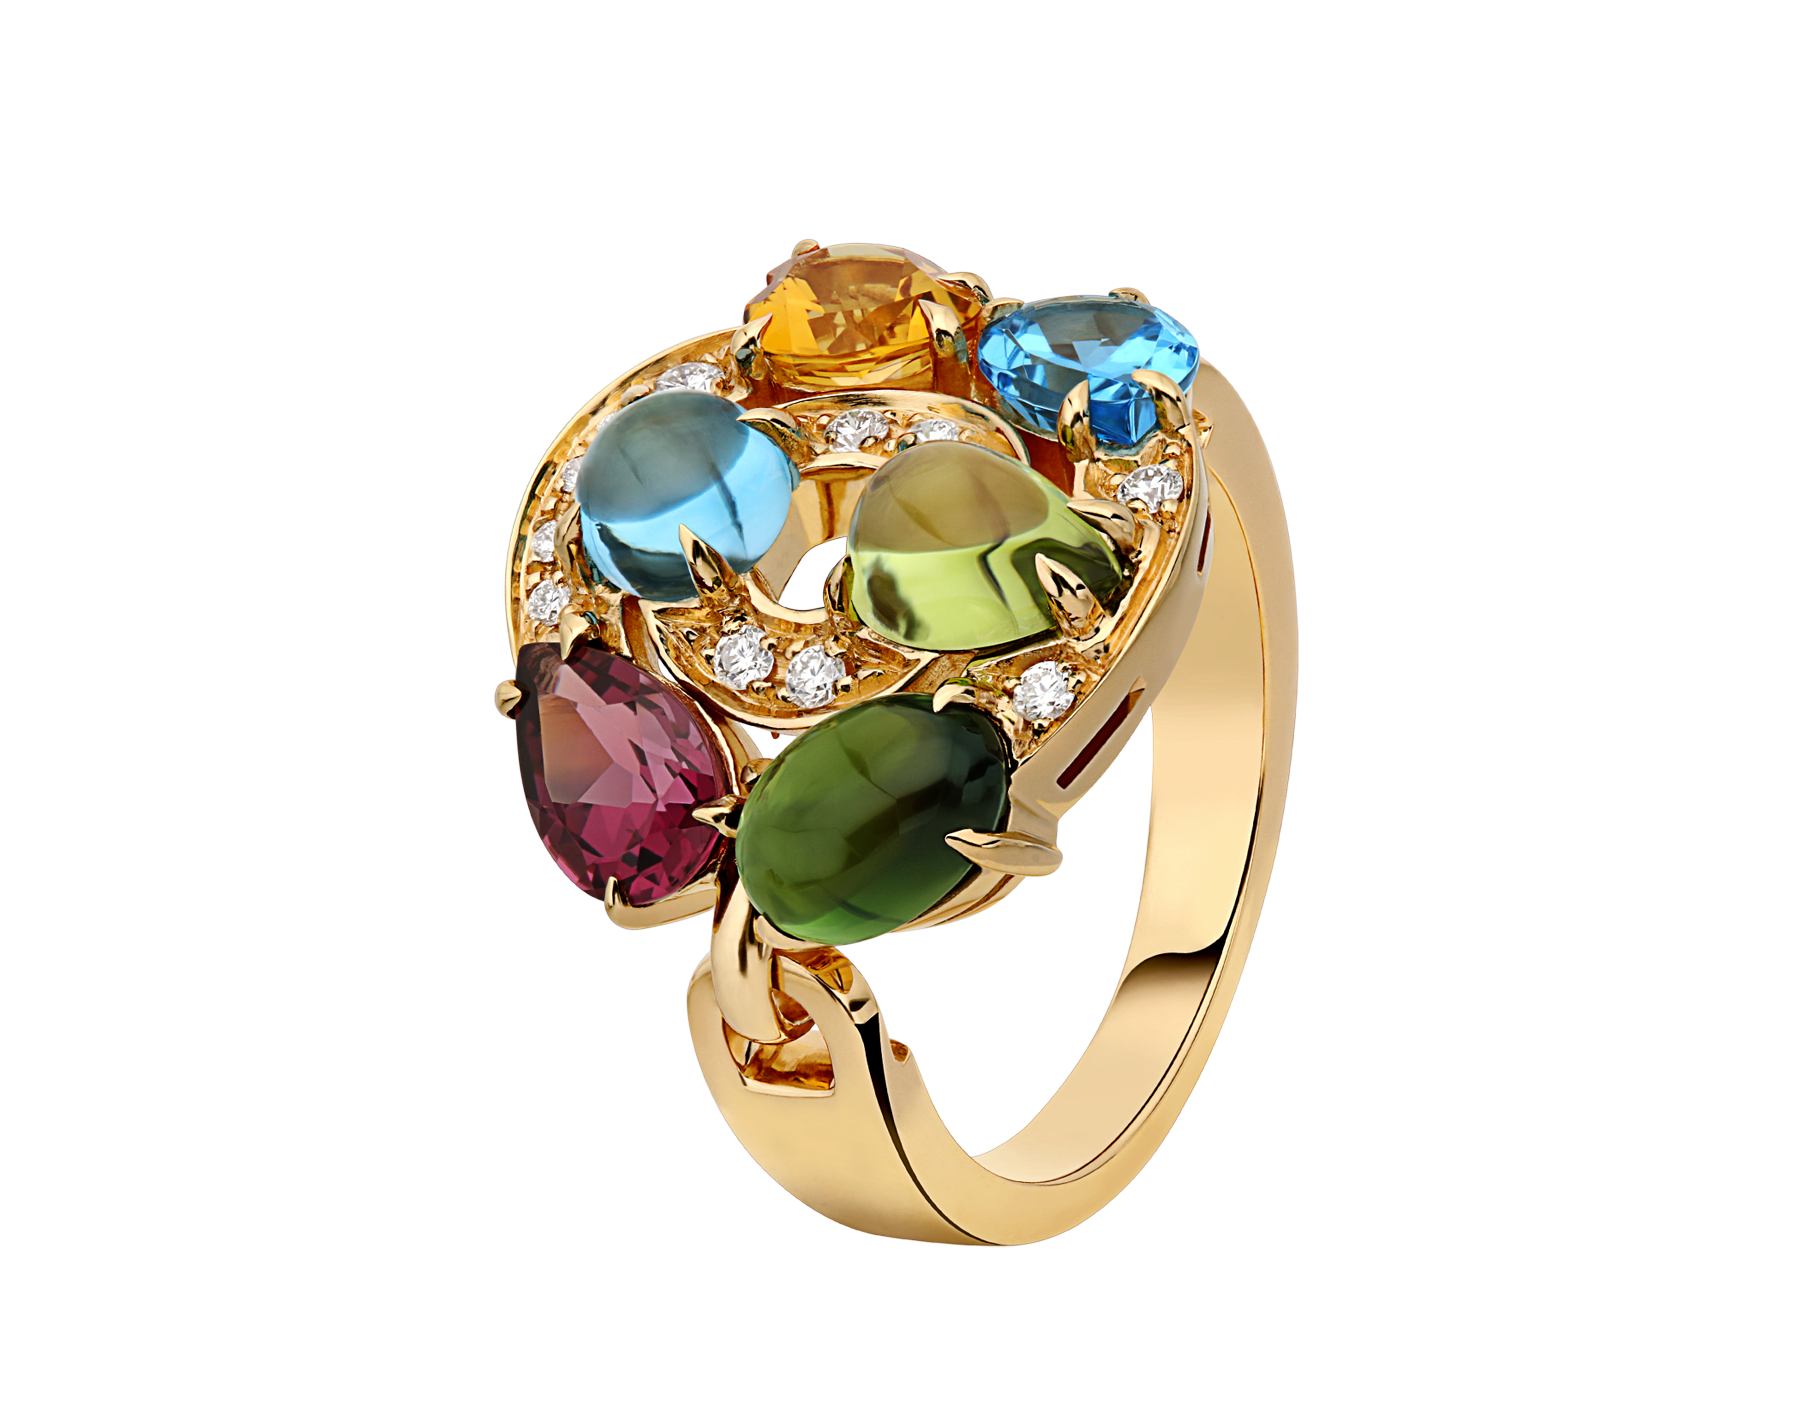 Cerchi shield-design 18 kt yellow gold ring set with blue topazes, green tourmaline, peridot, citrine quartz, rhodolite garnet and pavé diamonds AN852996 image 1